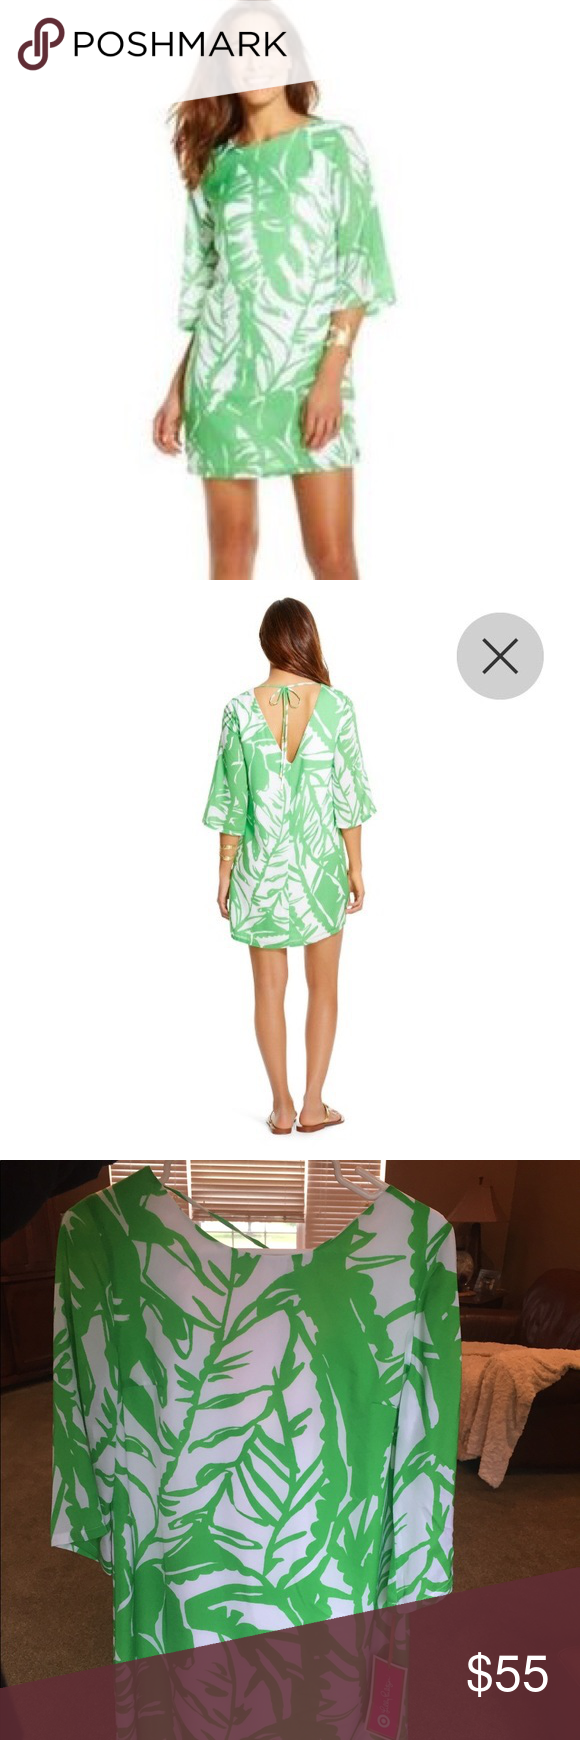 Lilly Pulitzer For Target Green Dress Nwt Sz Small Green Dress Clothes Design Lilly Pulitzer Target [ 1740 x 580 Pixel ]